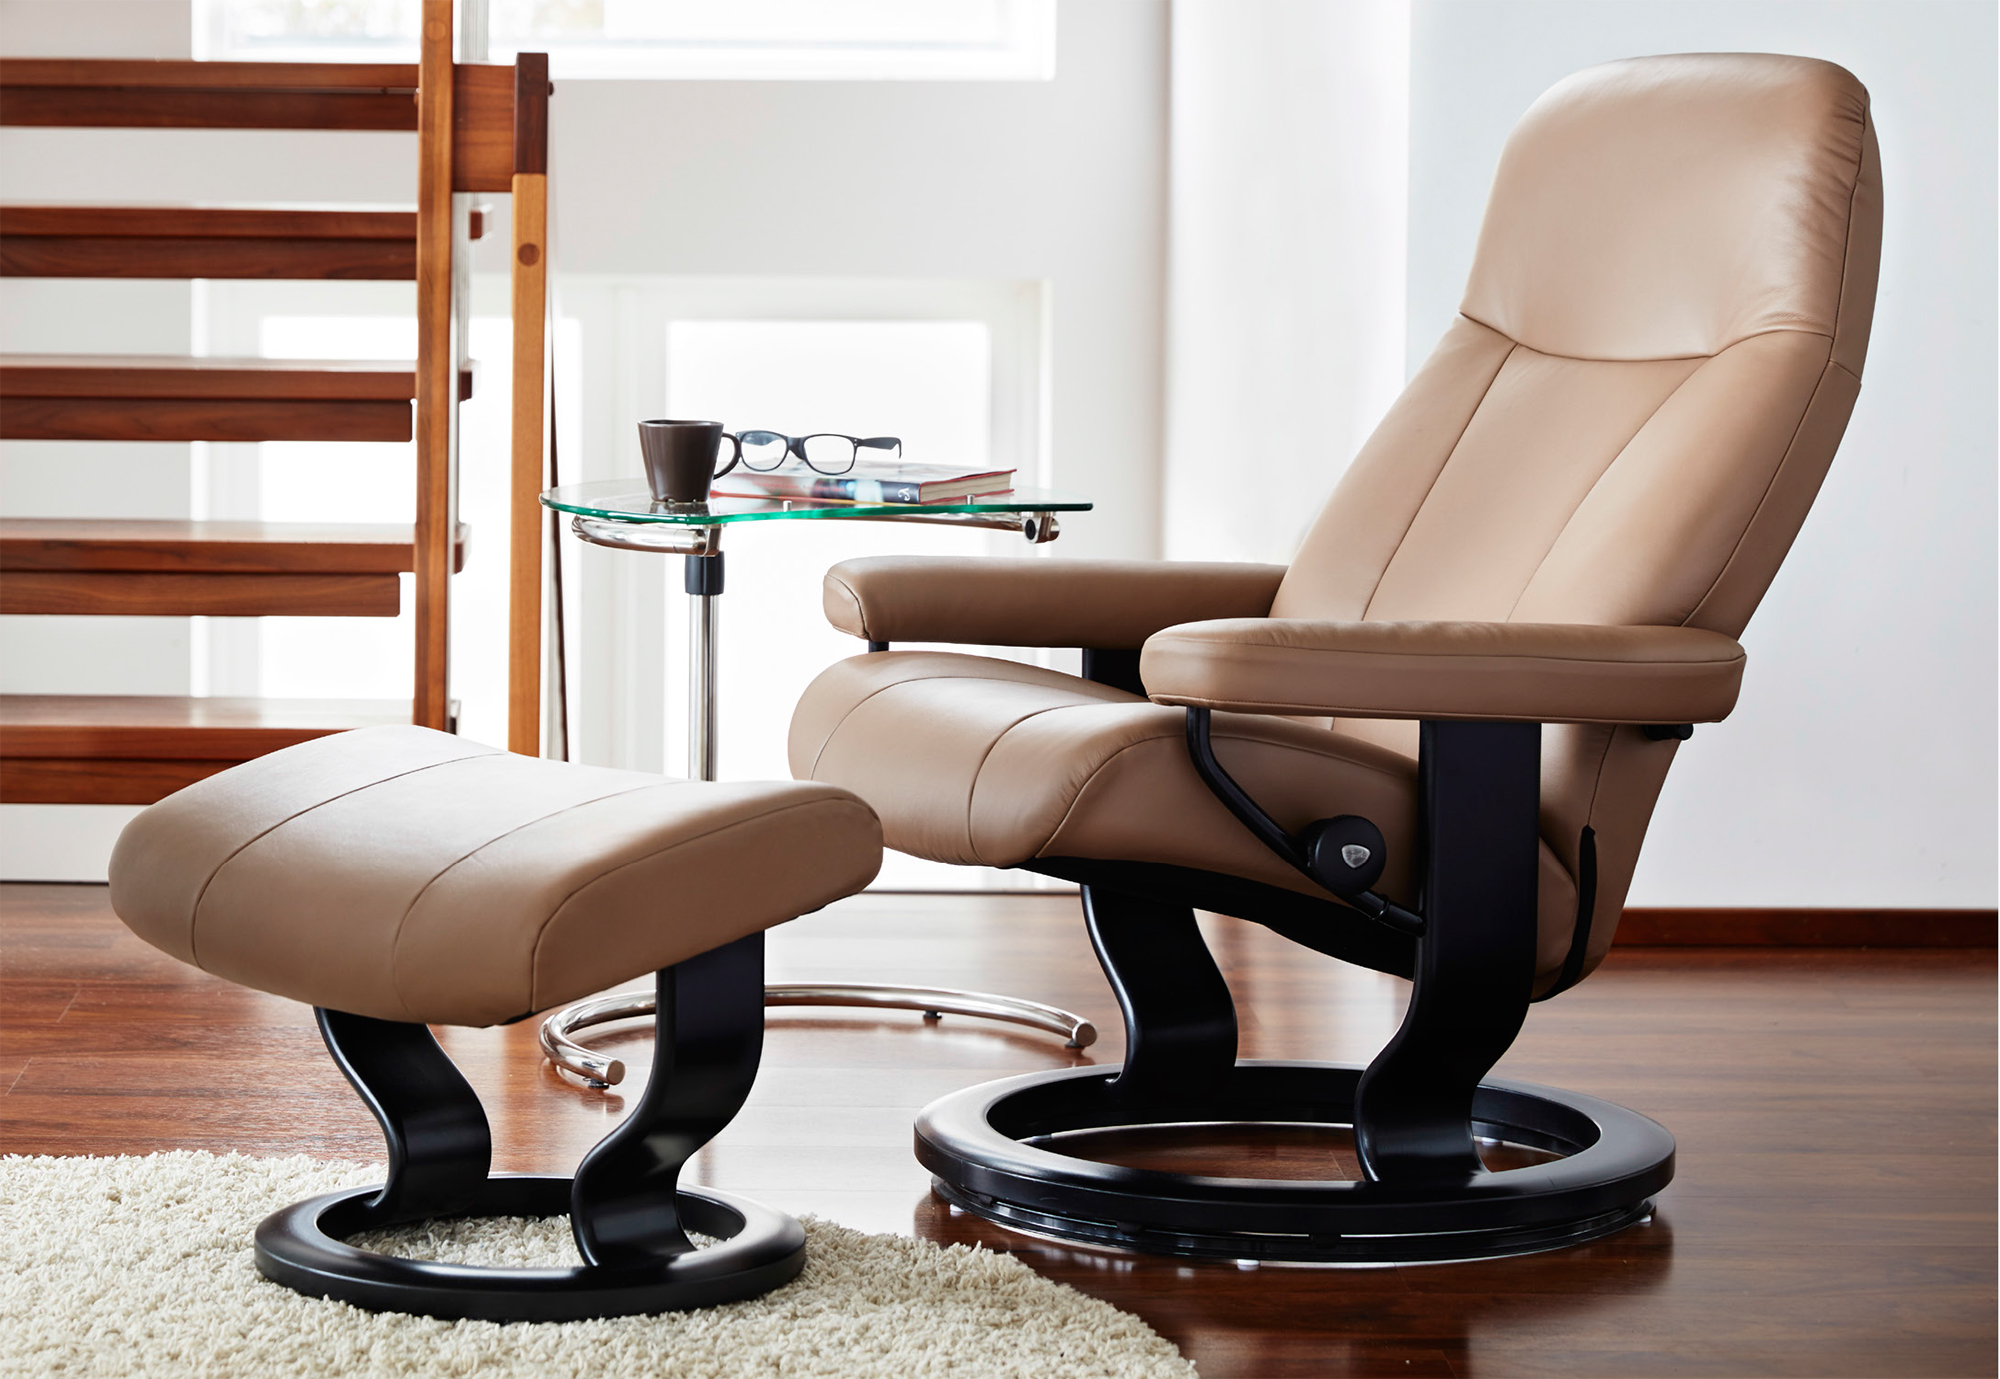 stressless garda recliner chair and ottoman by ekornes. Black Bedroom Furniture Sets. Home Design Ideas